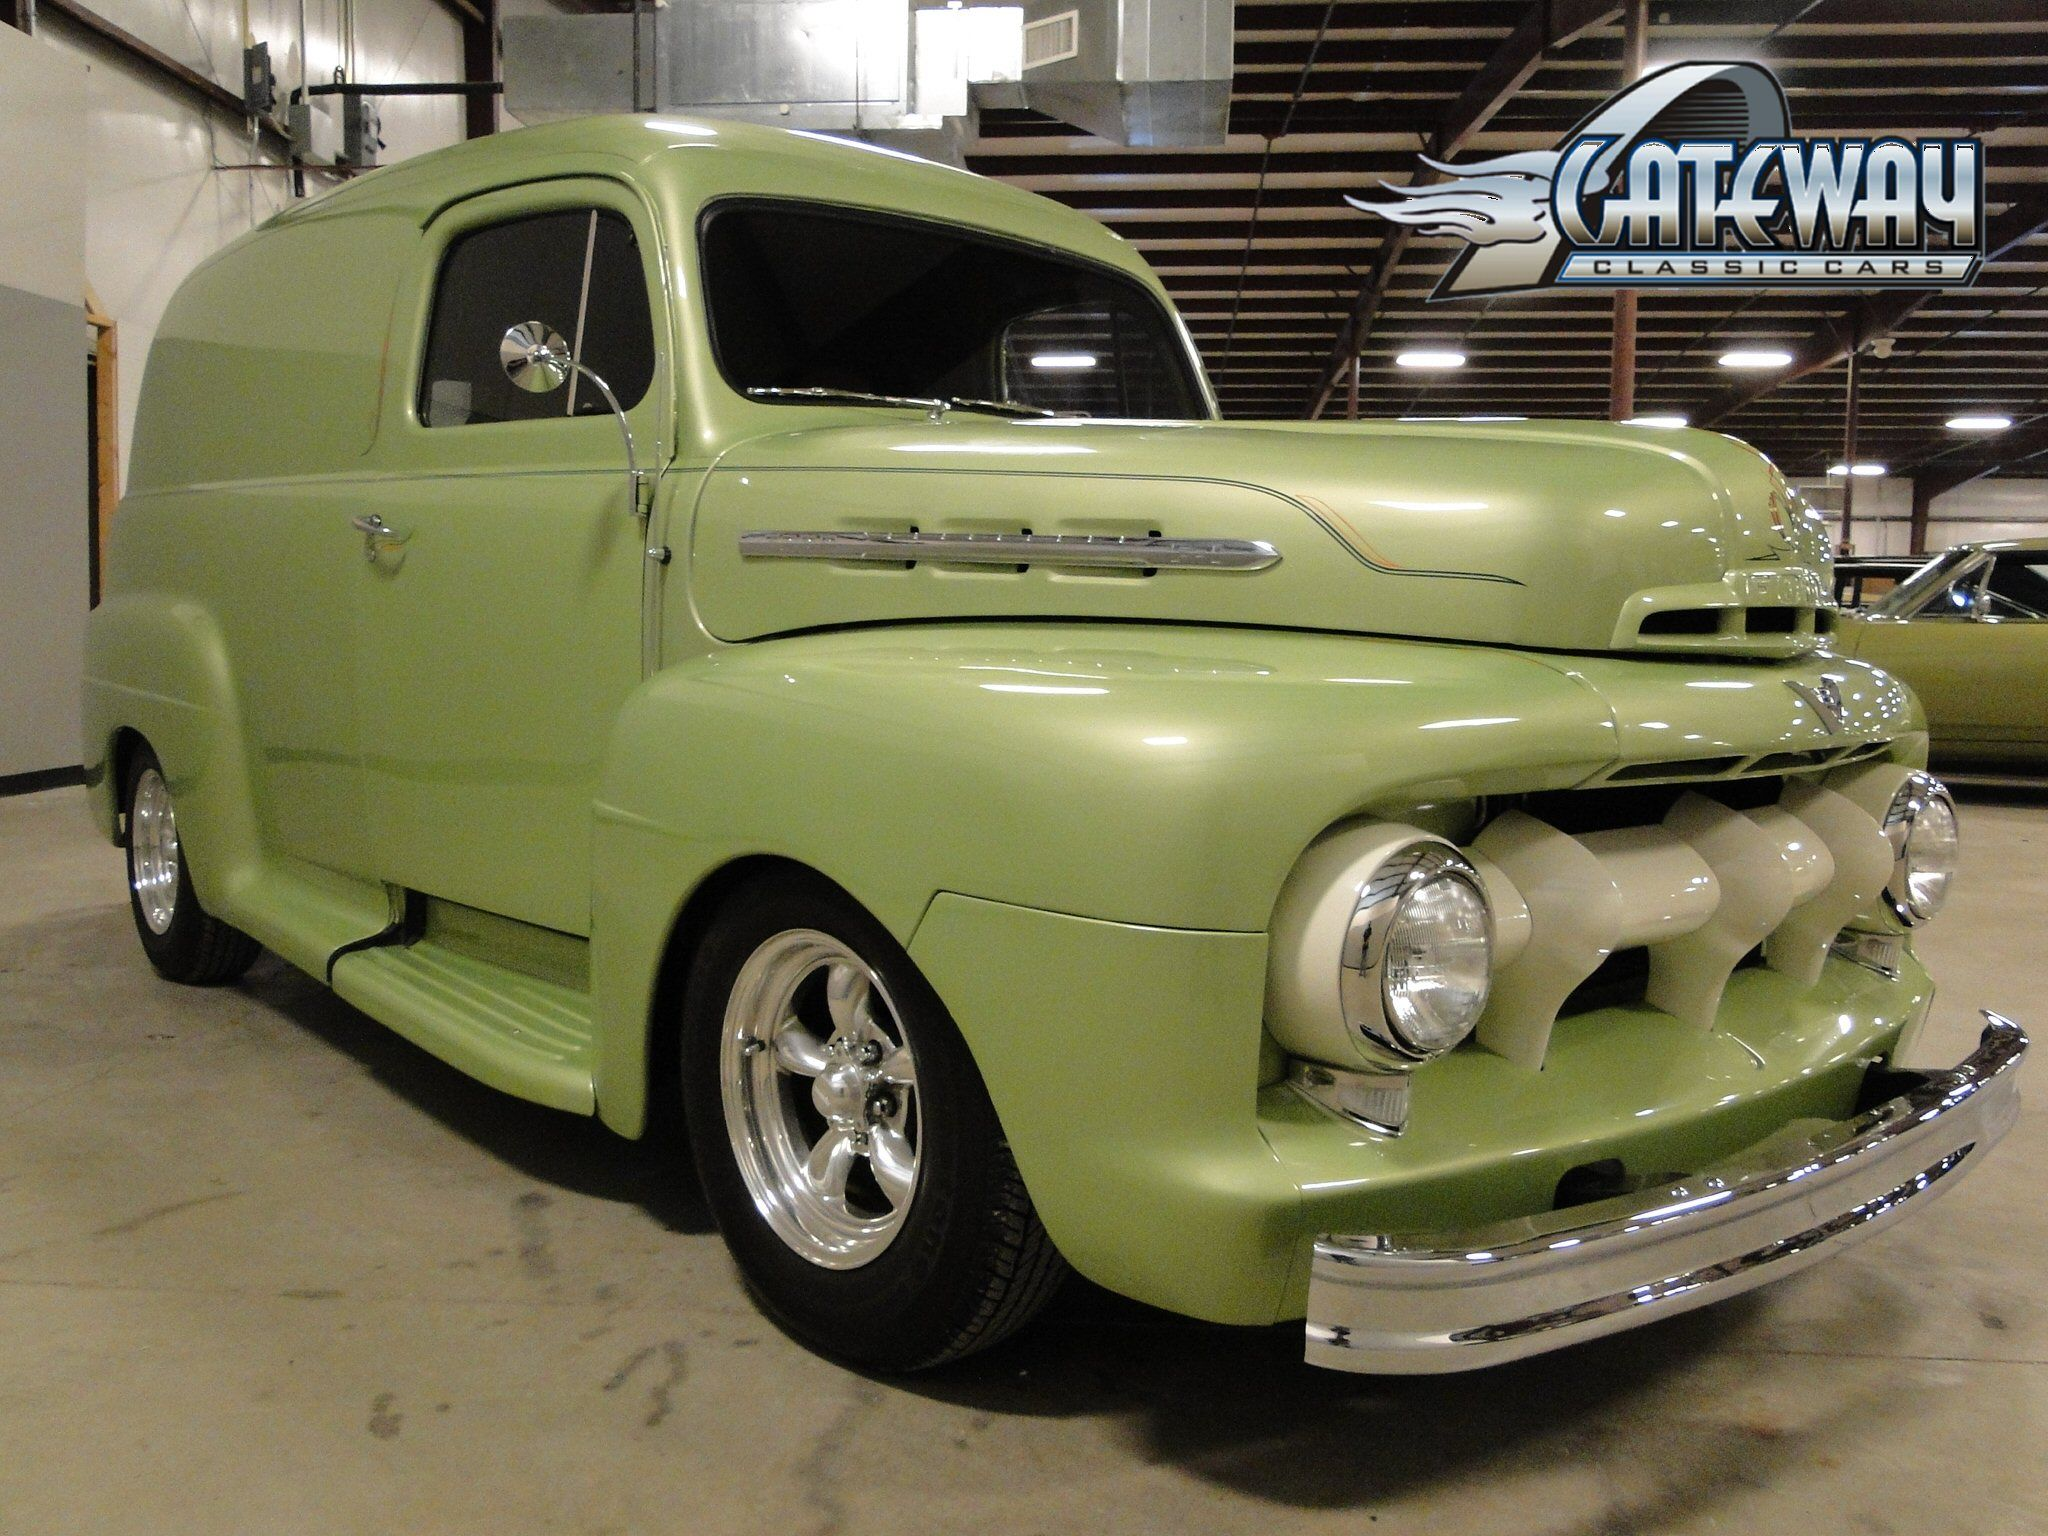 1955 ford f100 trucks for sale used cars on oodle autos post - For Sale In Our Louisville Kentucky Showroom Is A Cyber Green 1951 Ford Panel Truck 350 Cid Olds Auto